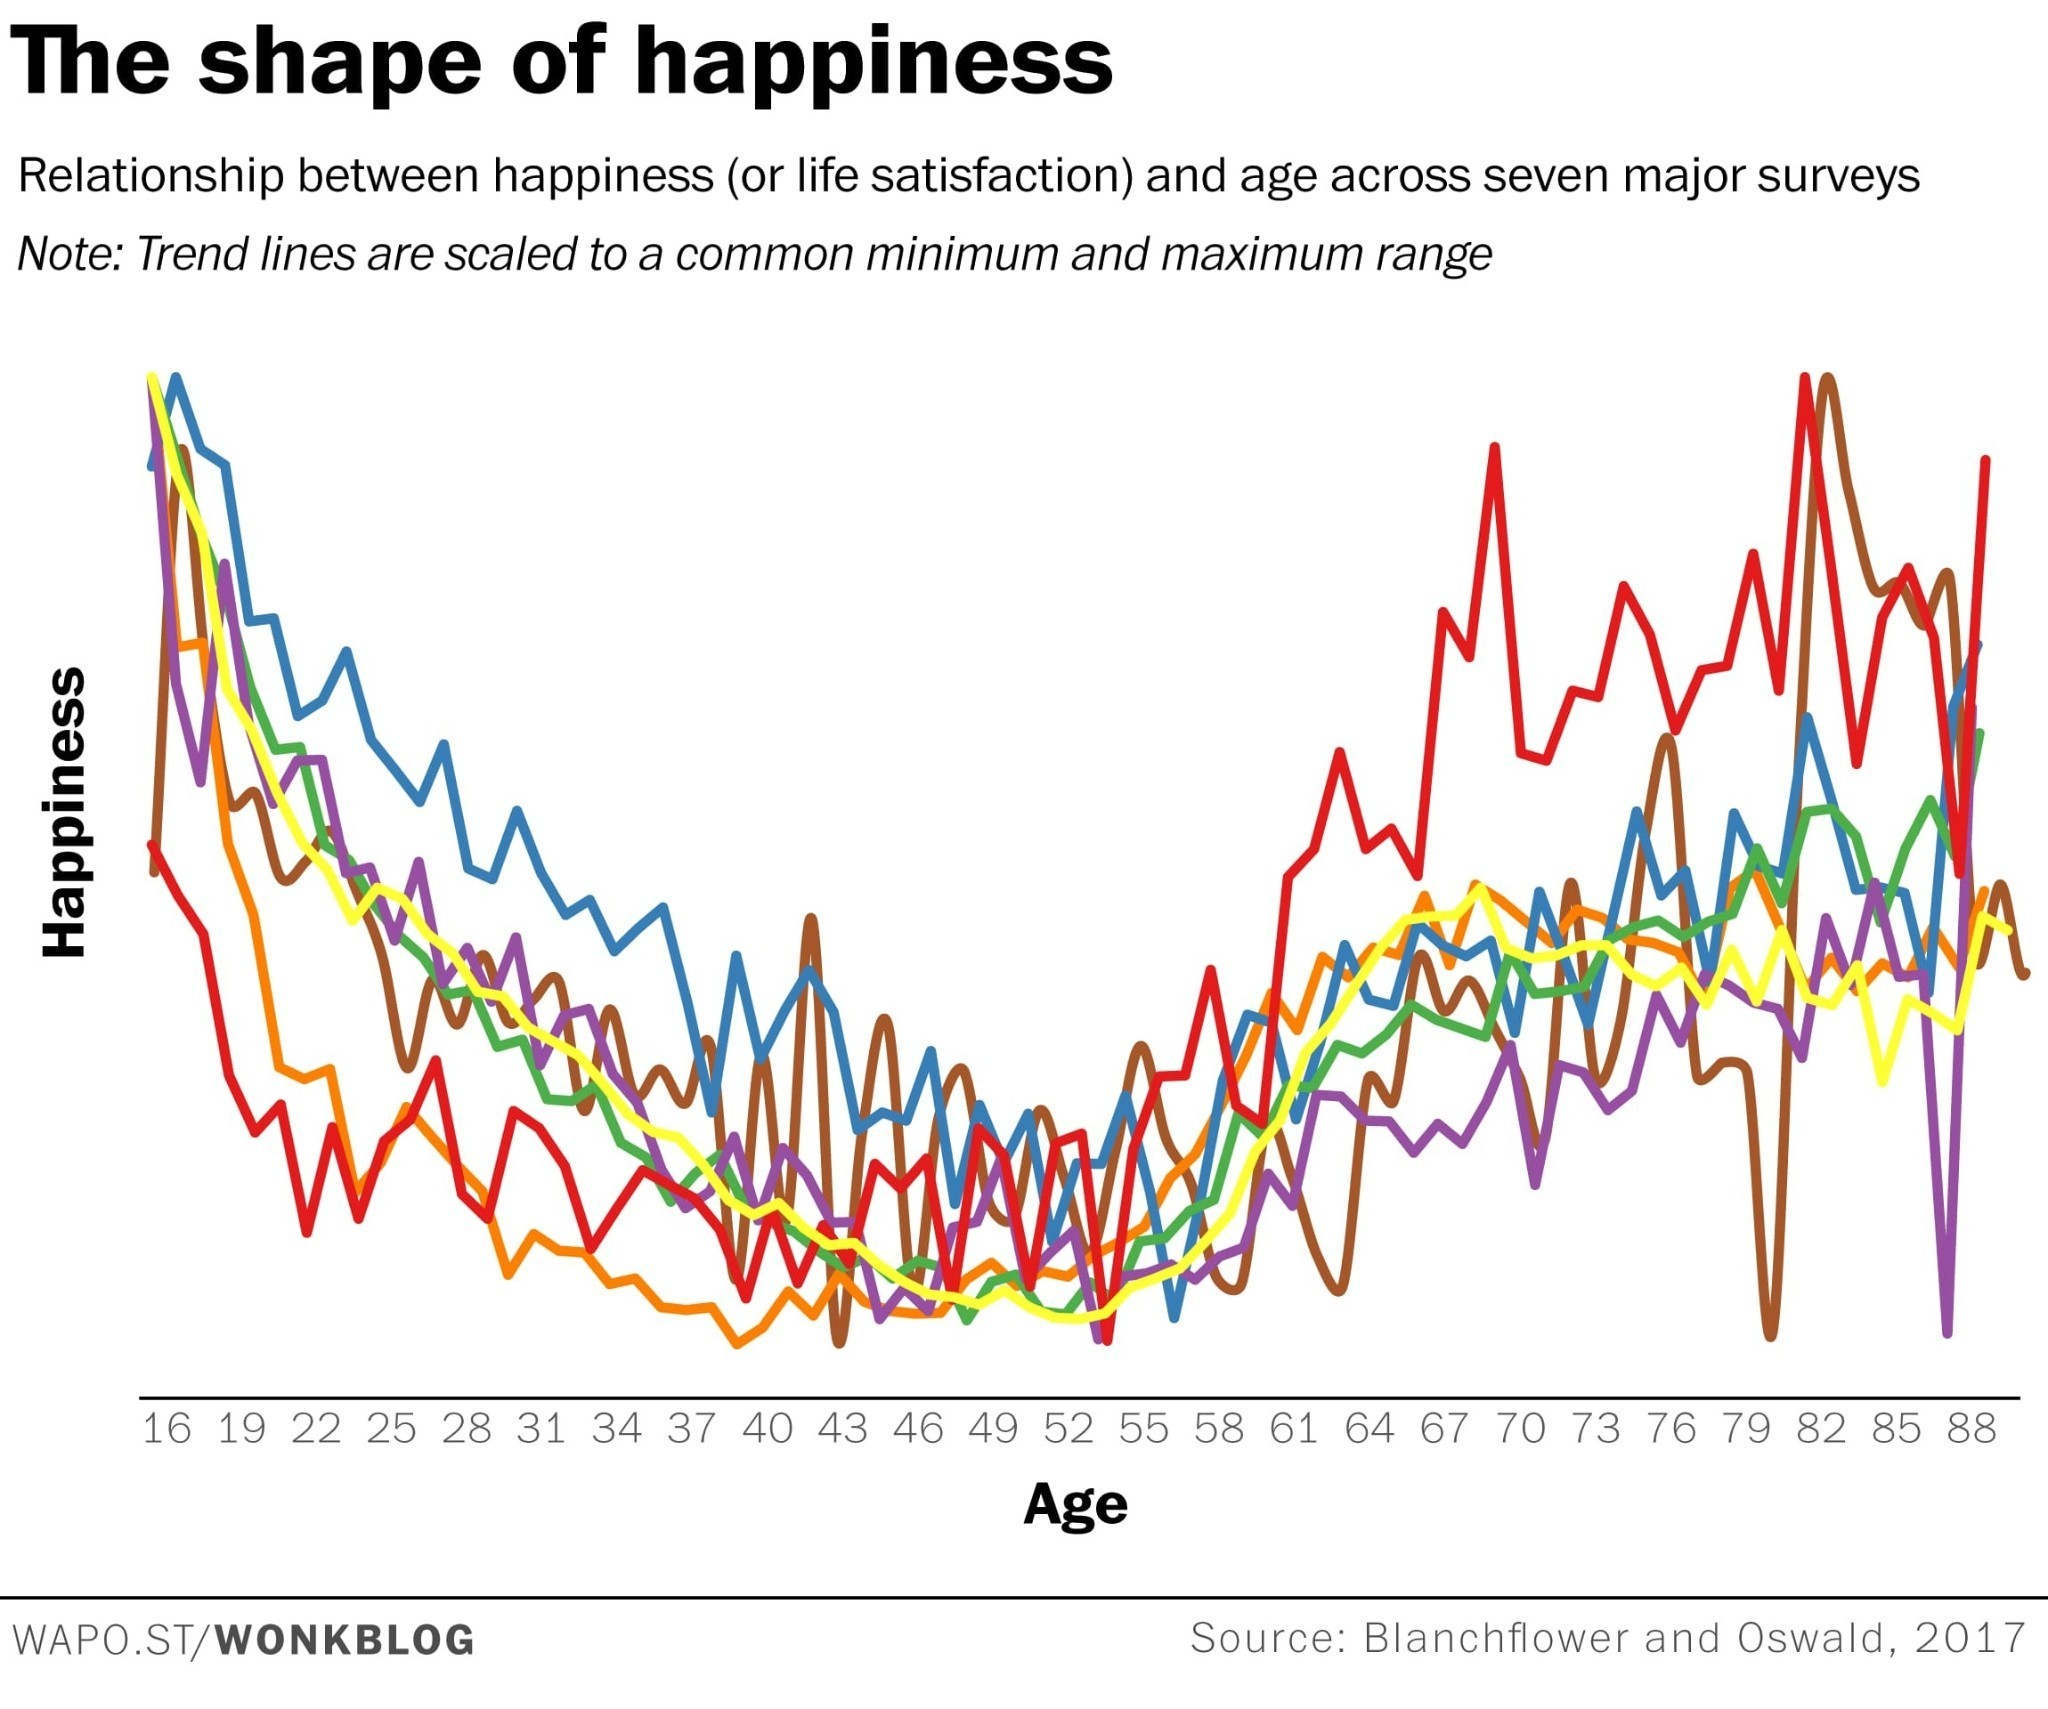 Under 50? You still haven't hit rock bottom, happiness-wise.